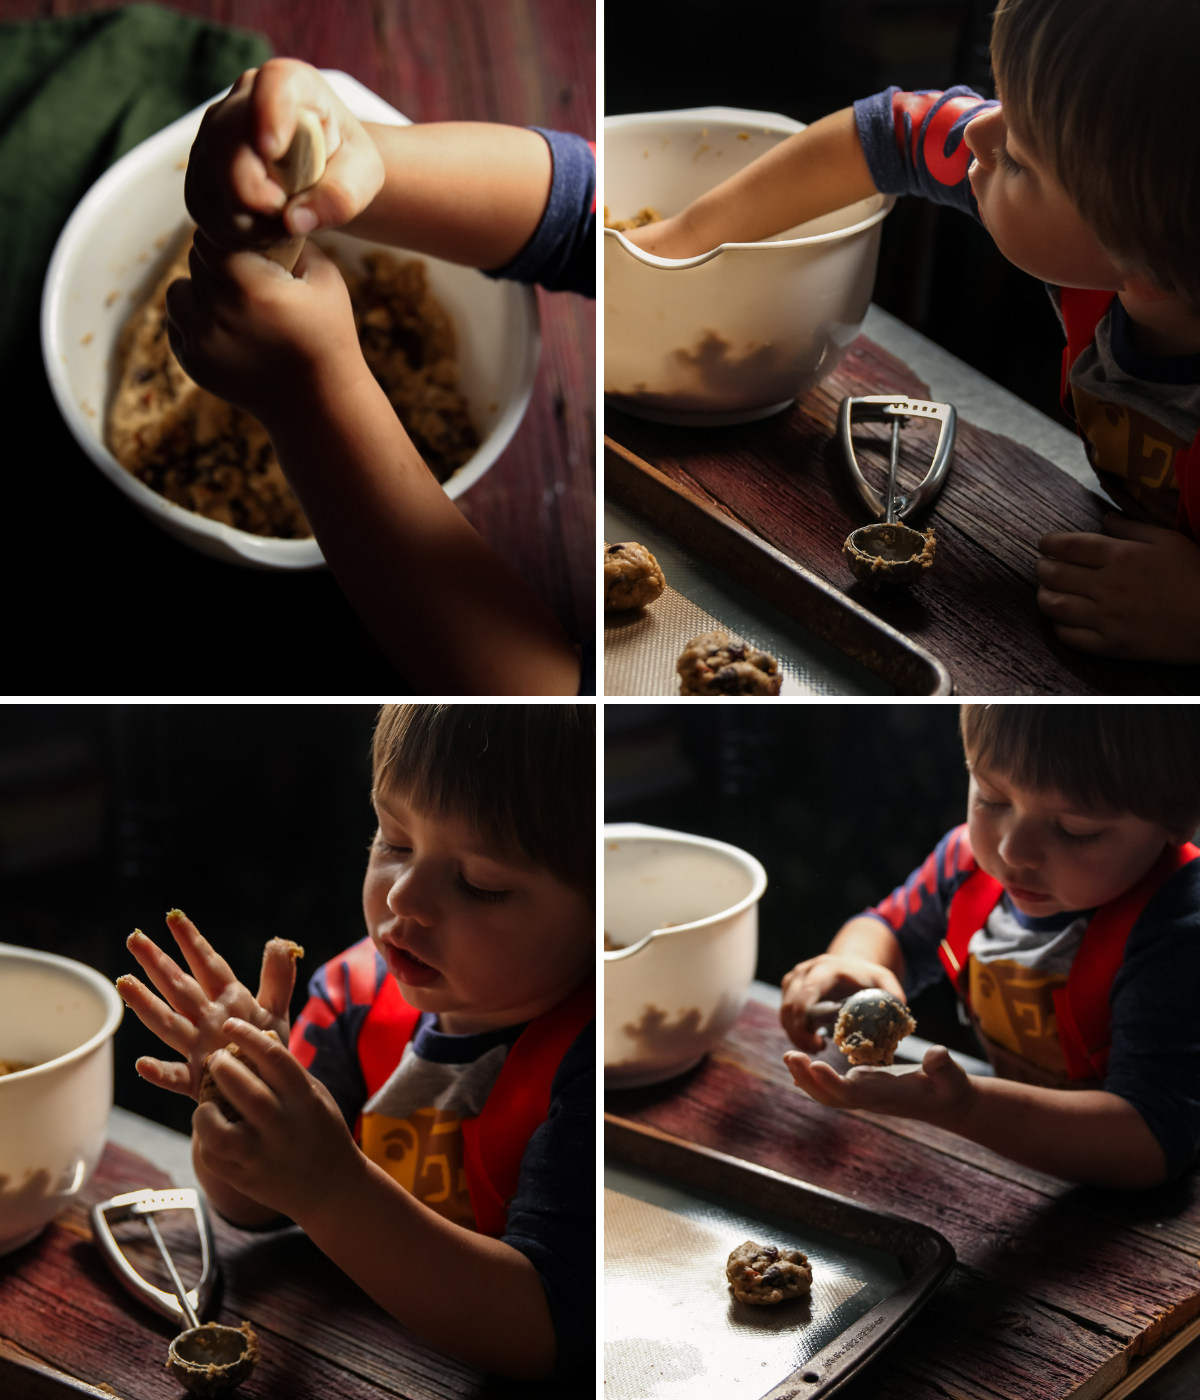 Making the best oatmeal cookies with cherries chocolate chips and almonds